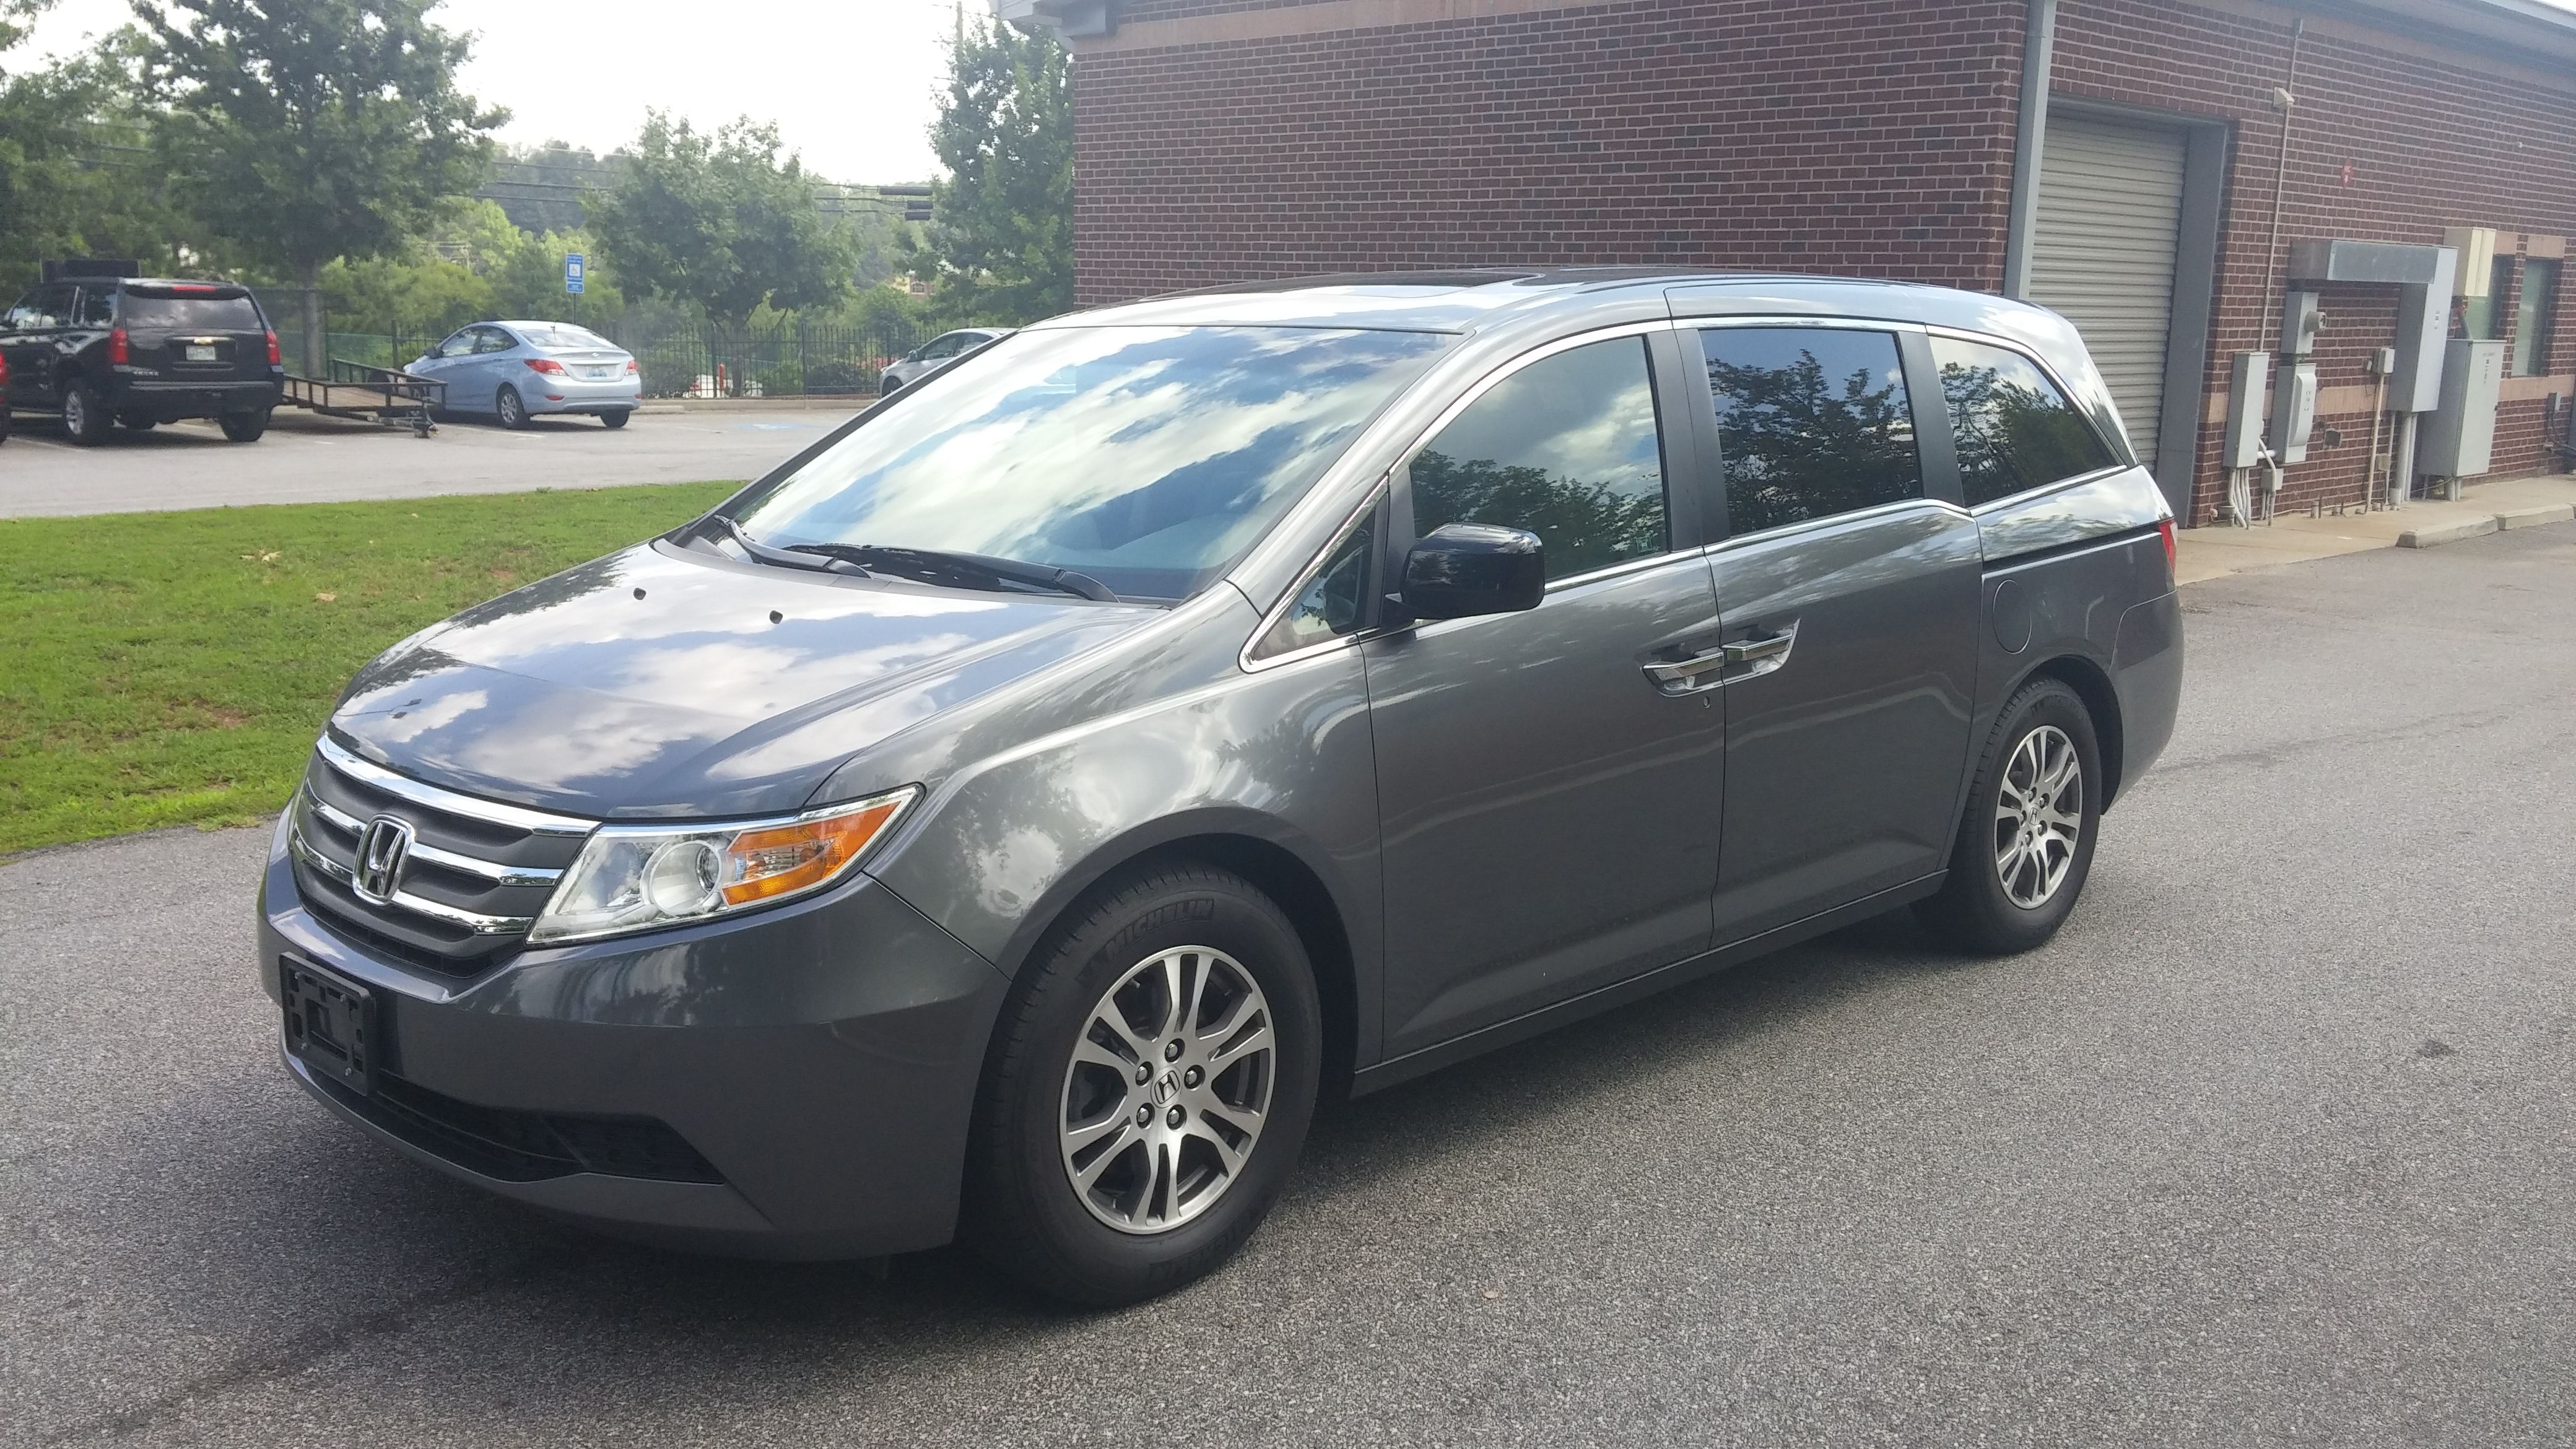 Best 25 honda odyssey lease ideas on pinterest 2013 honda odyssey honda pilot lease and honda models